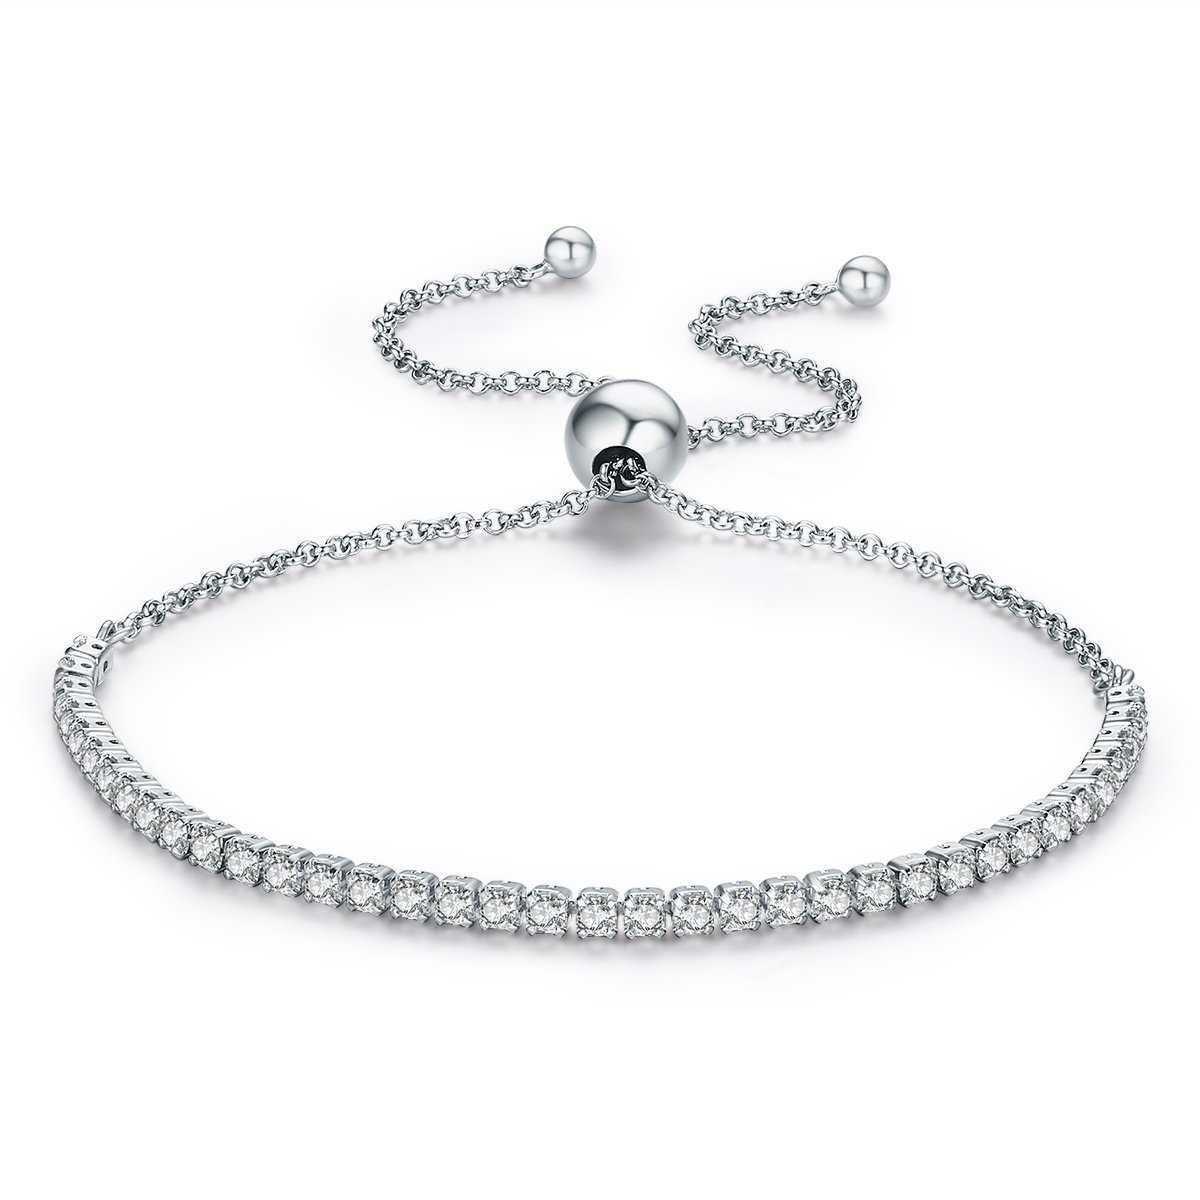 CLÉMENT & Hilton Hand Chain Bracelet Specially for Women Girls 925 fine Silver/Crystal The Most Intimate Gift for Friends o Mothers by CLÉMENT & HILTON (Image #1)